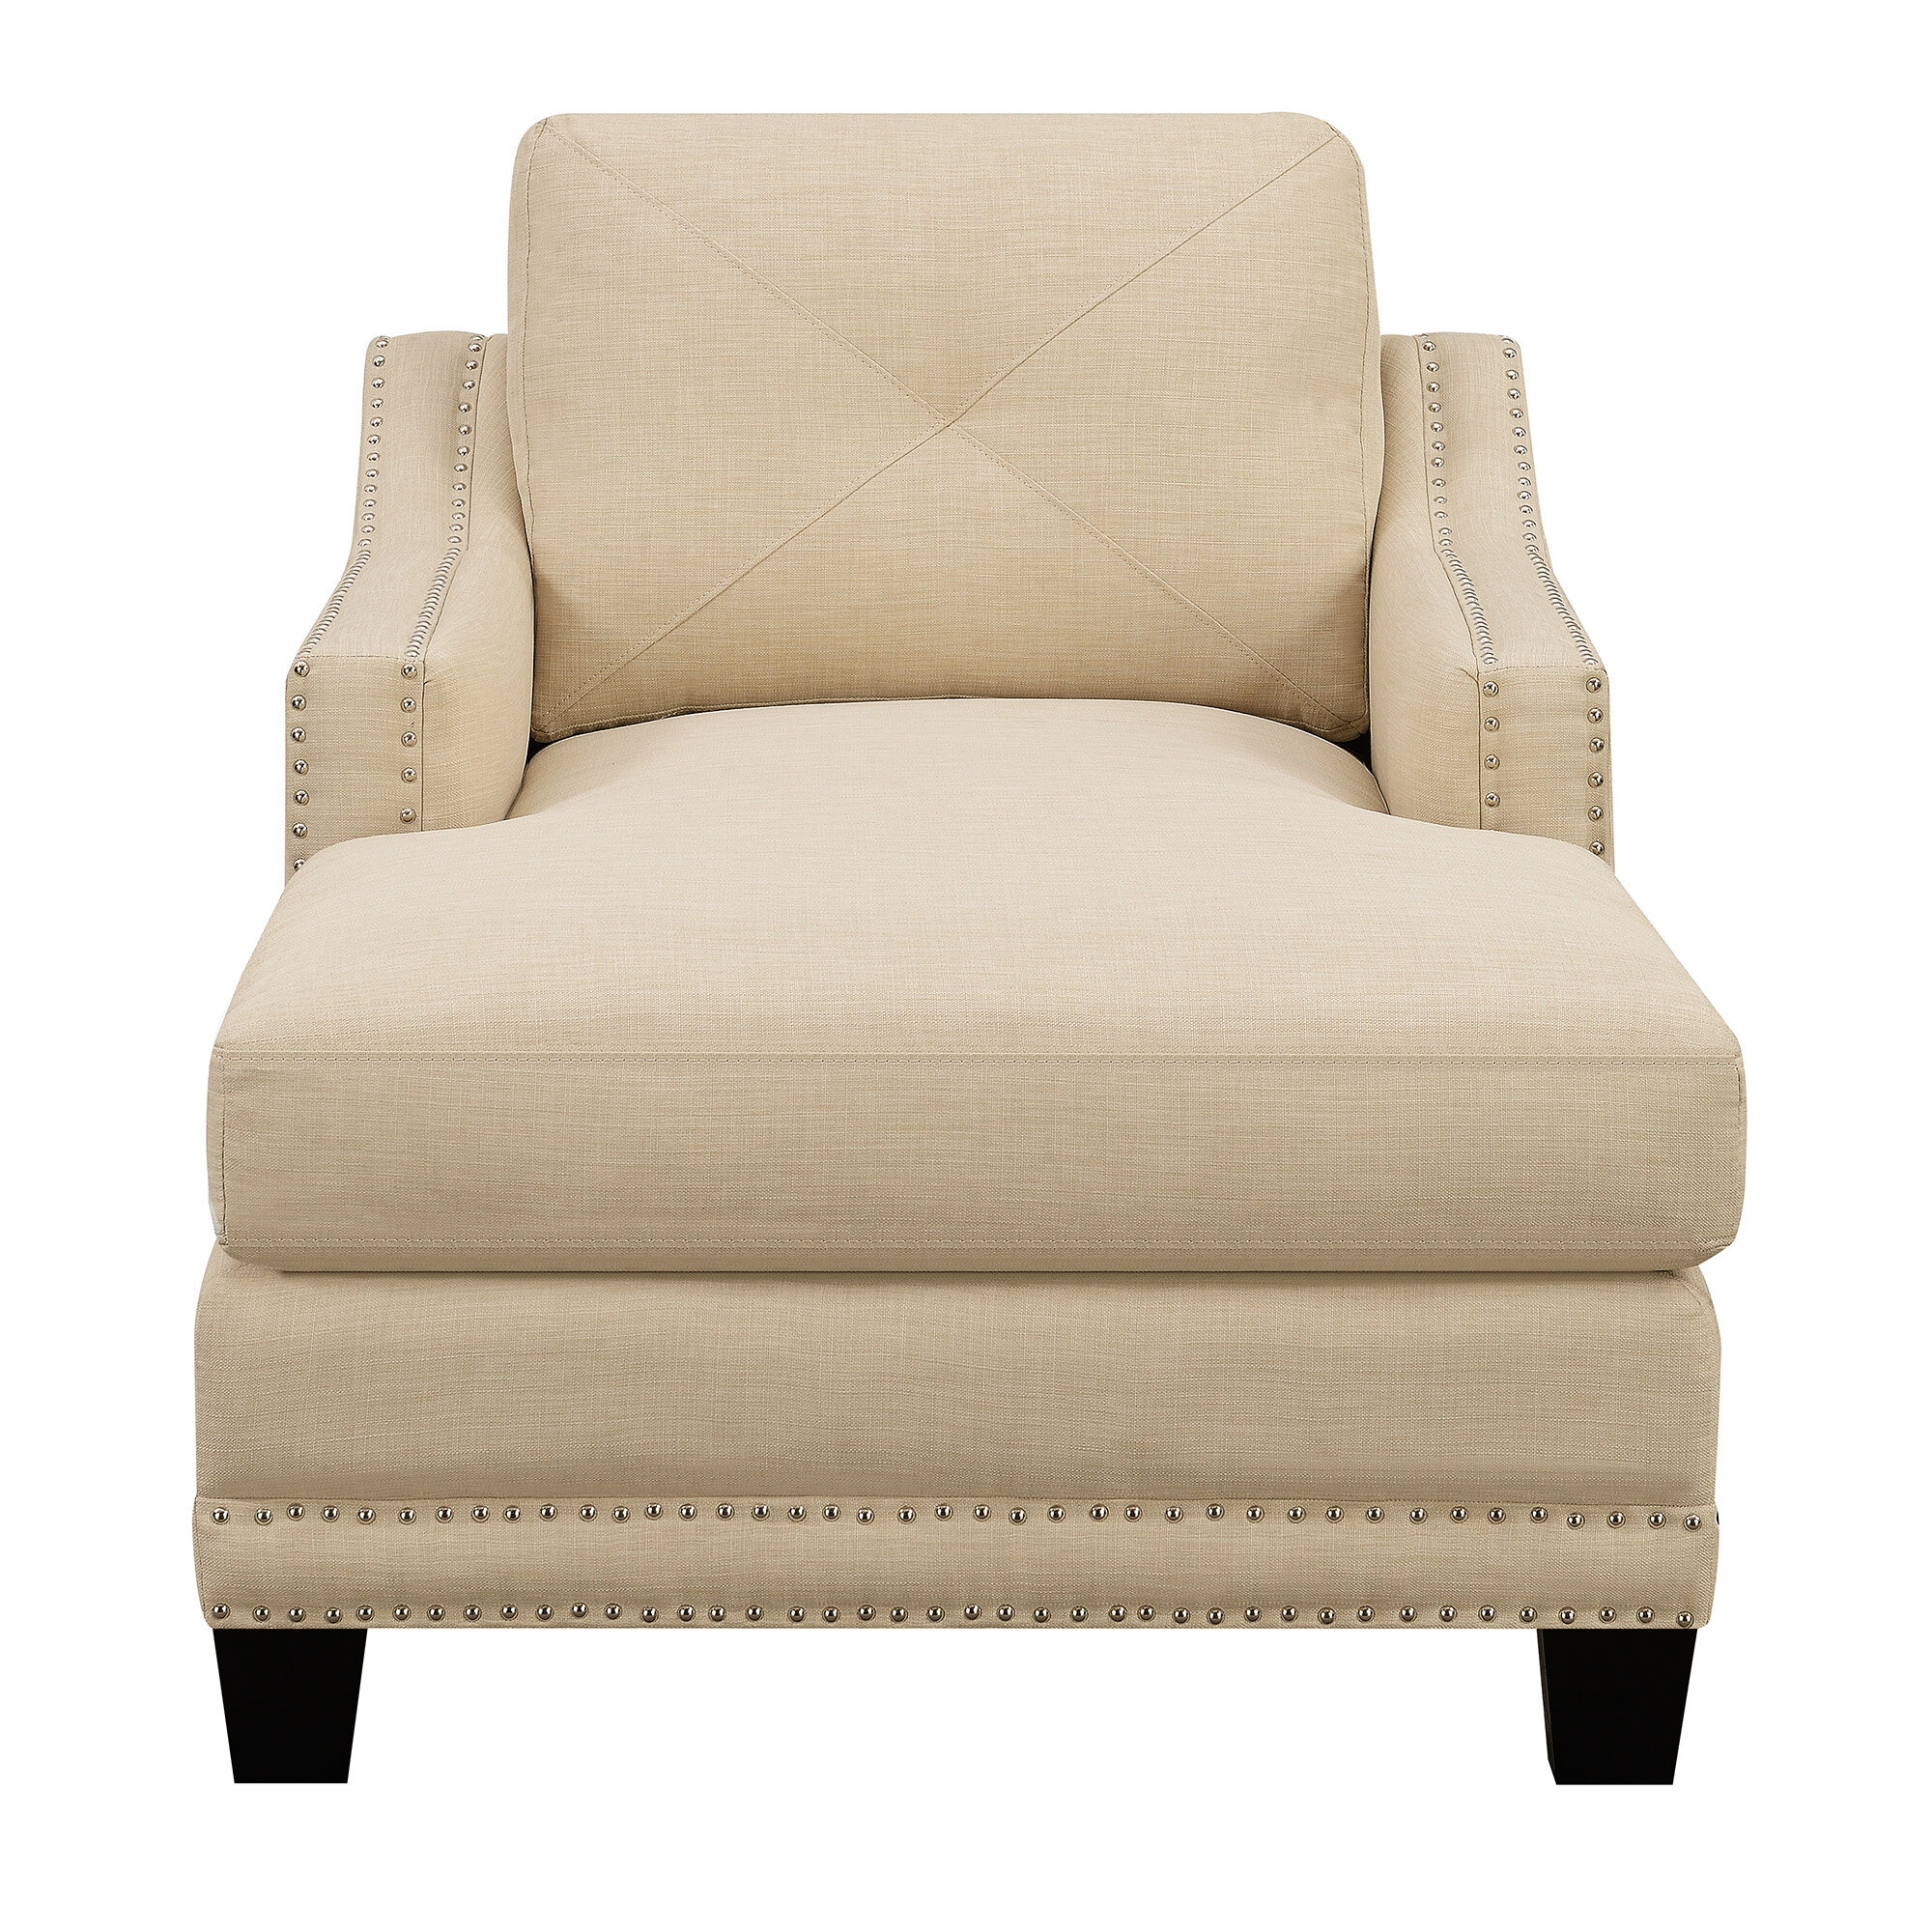 Galveston Chaise Lounge Reviews Joss Main